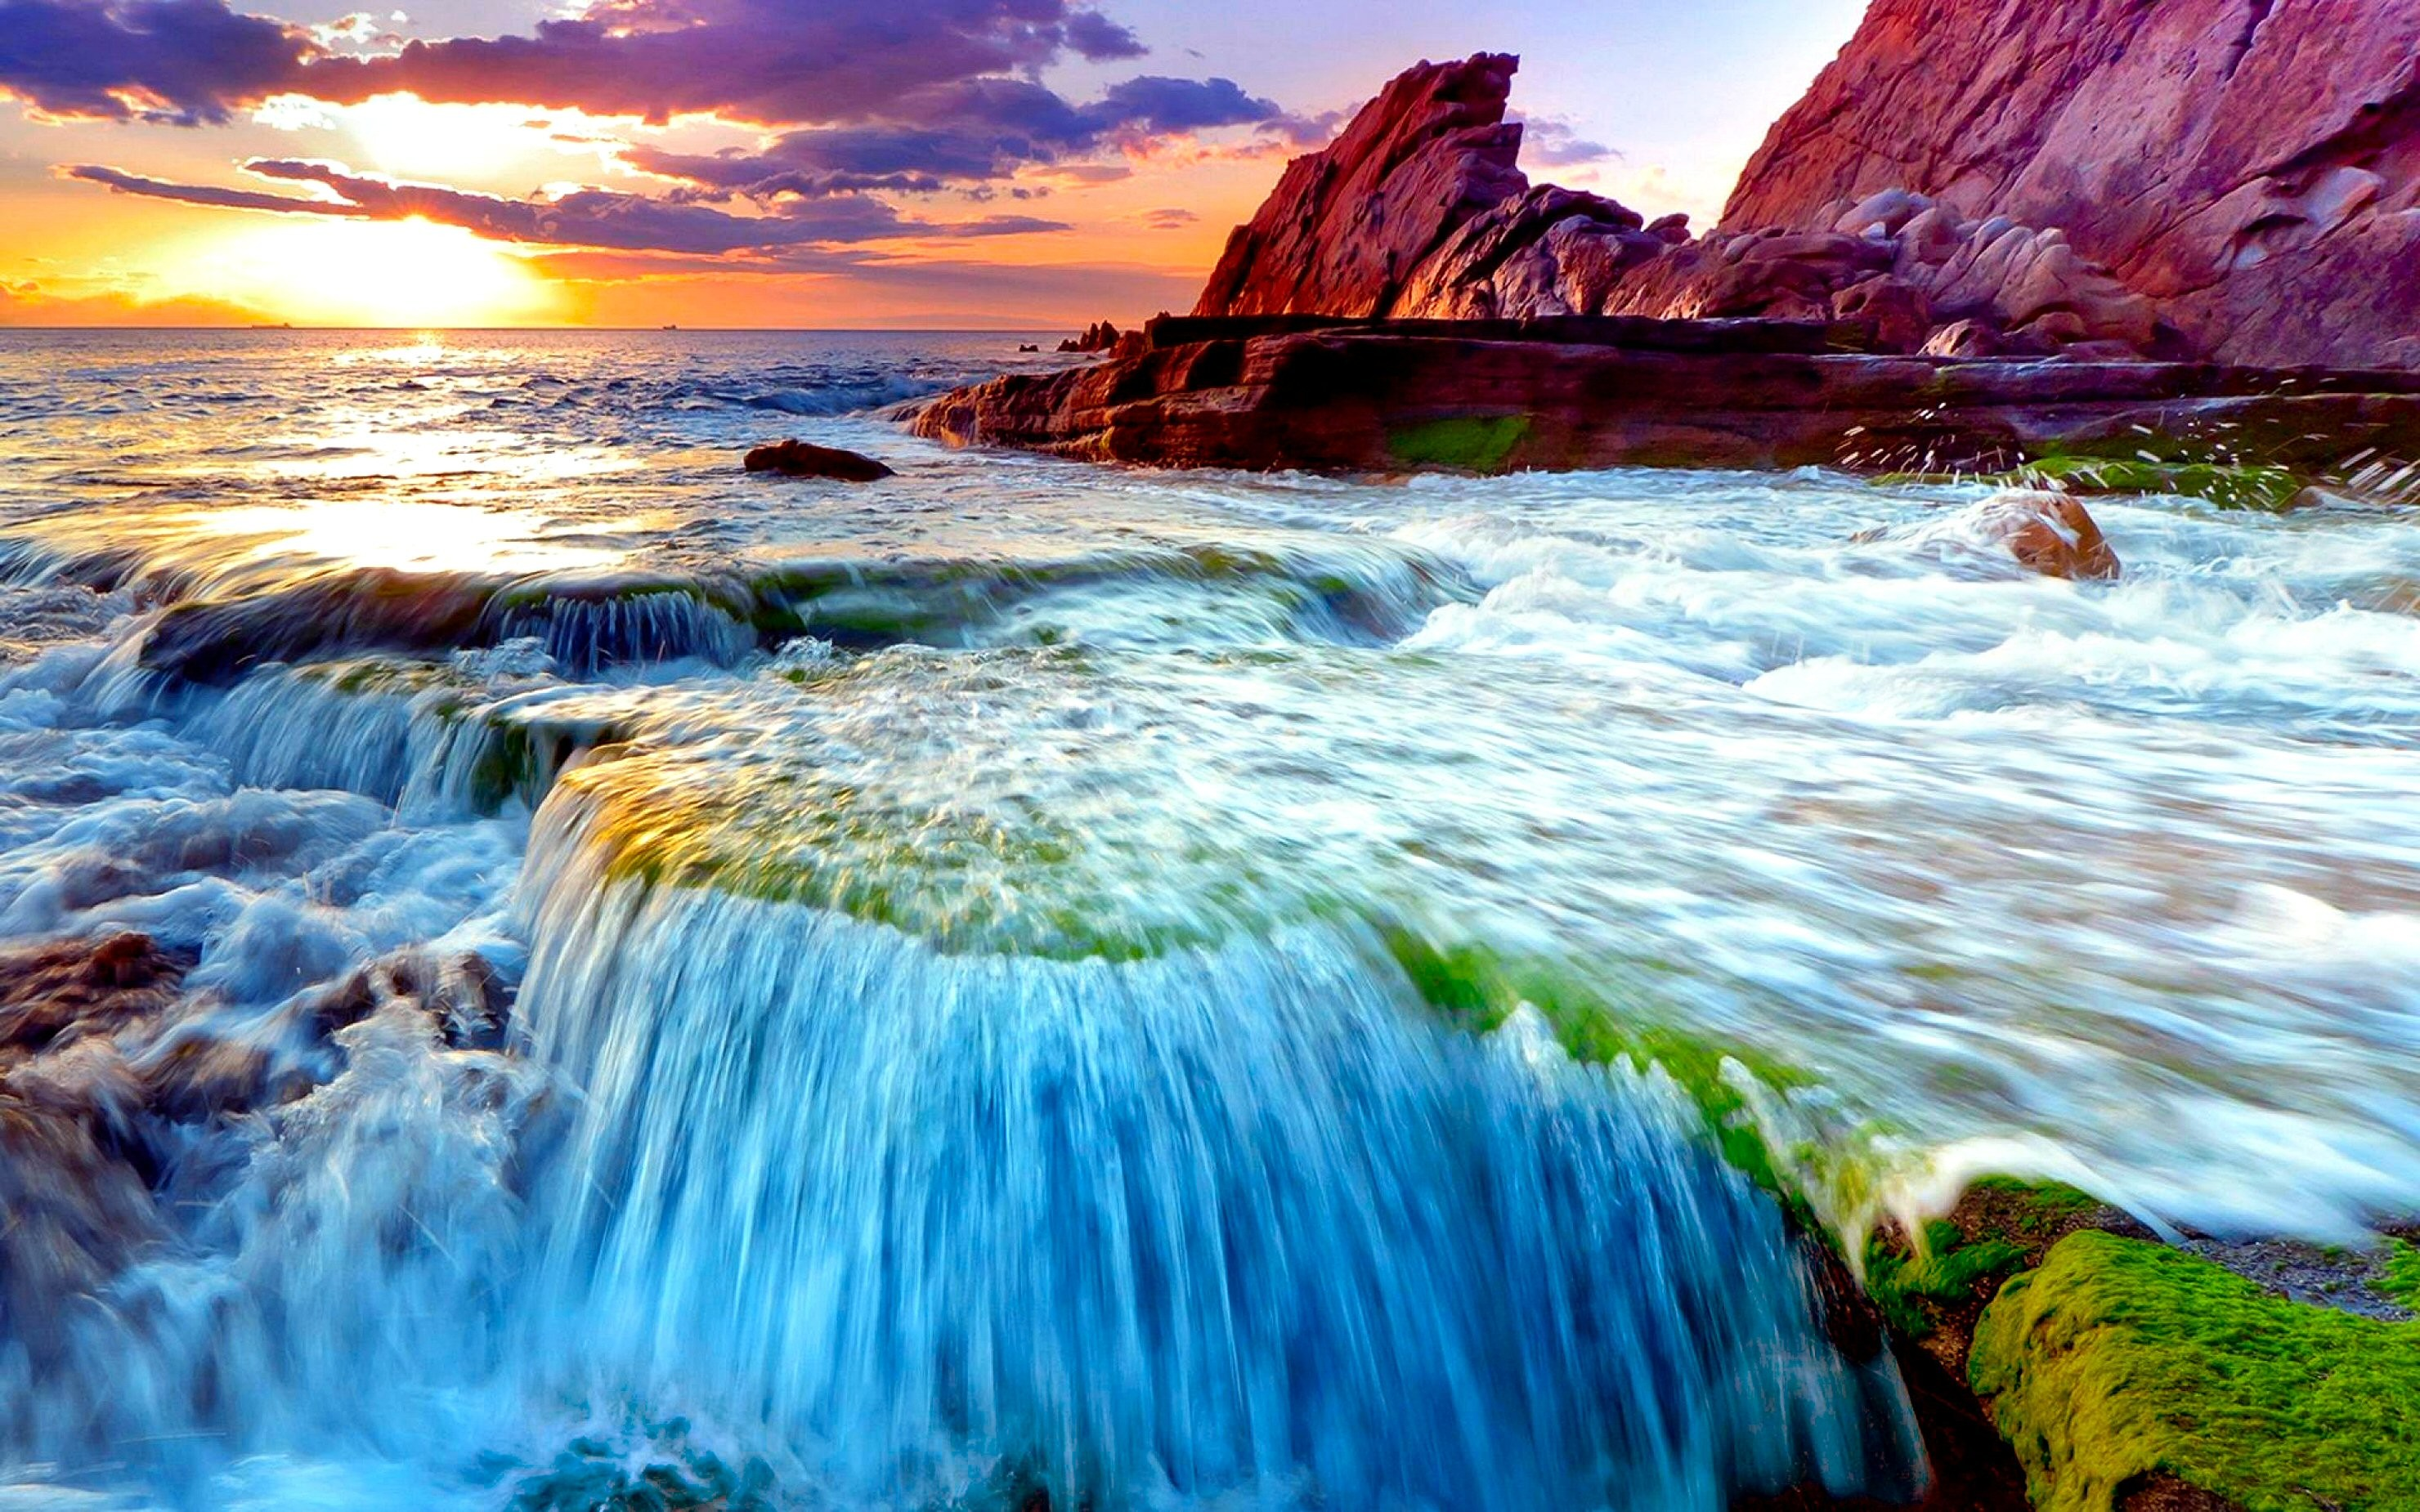 2960x1850 Spectacular HD Waterfall Wallpapers to Download